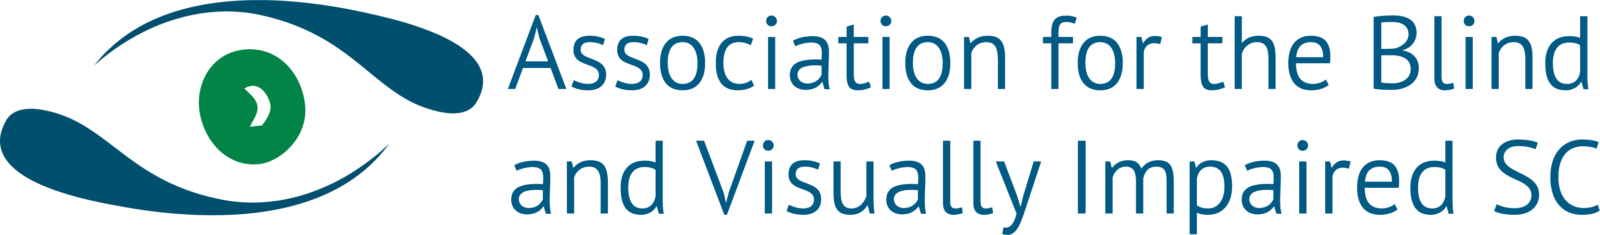 Association for the Blind and Visually Impaired South Carolina